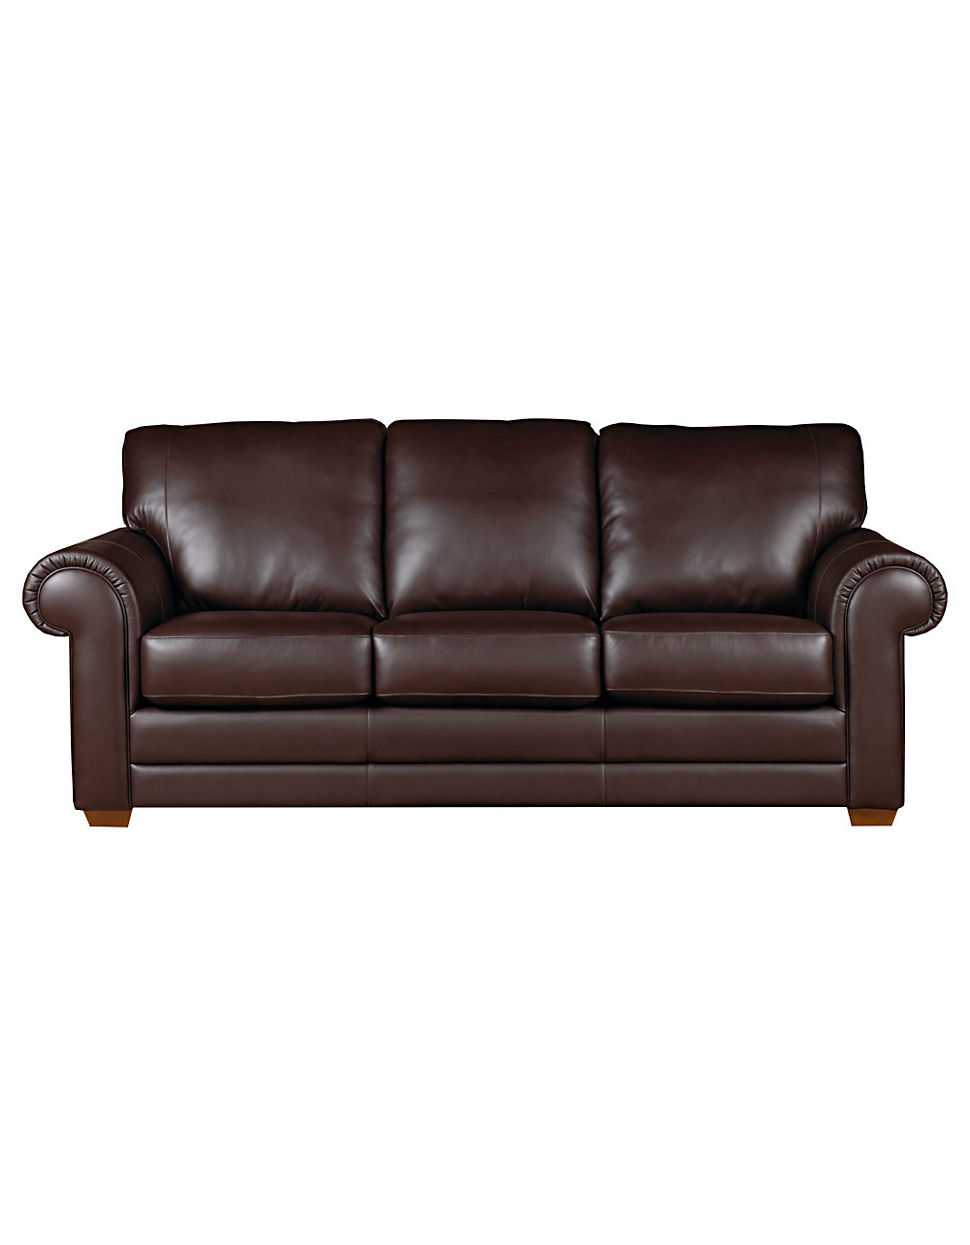 m sofas halifax refil sofa. Black Bedroom Furniture Sets. Home Design Ideas